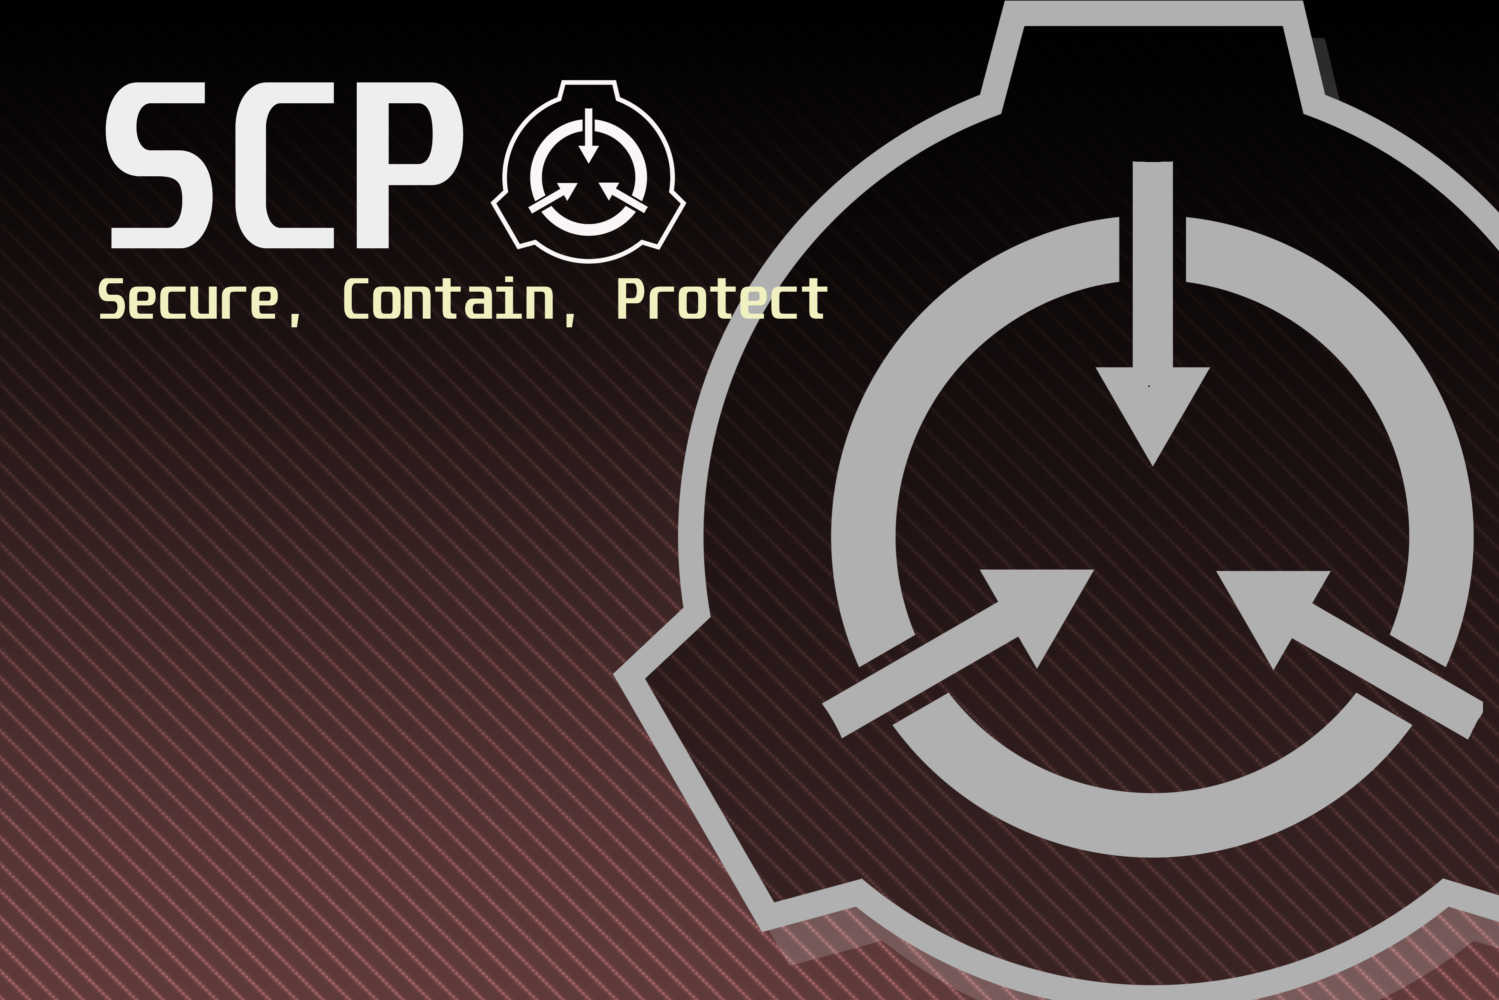 The SCP Trademark is Under Attack.